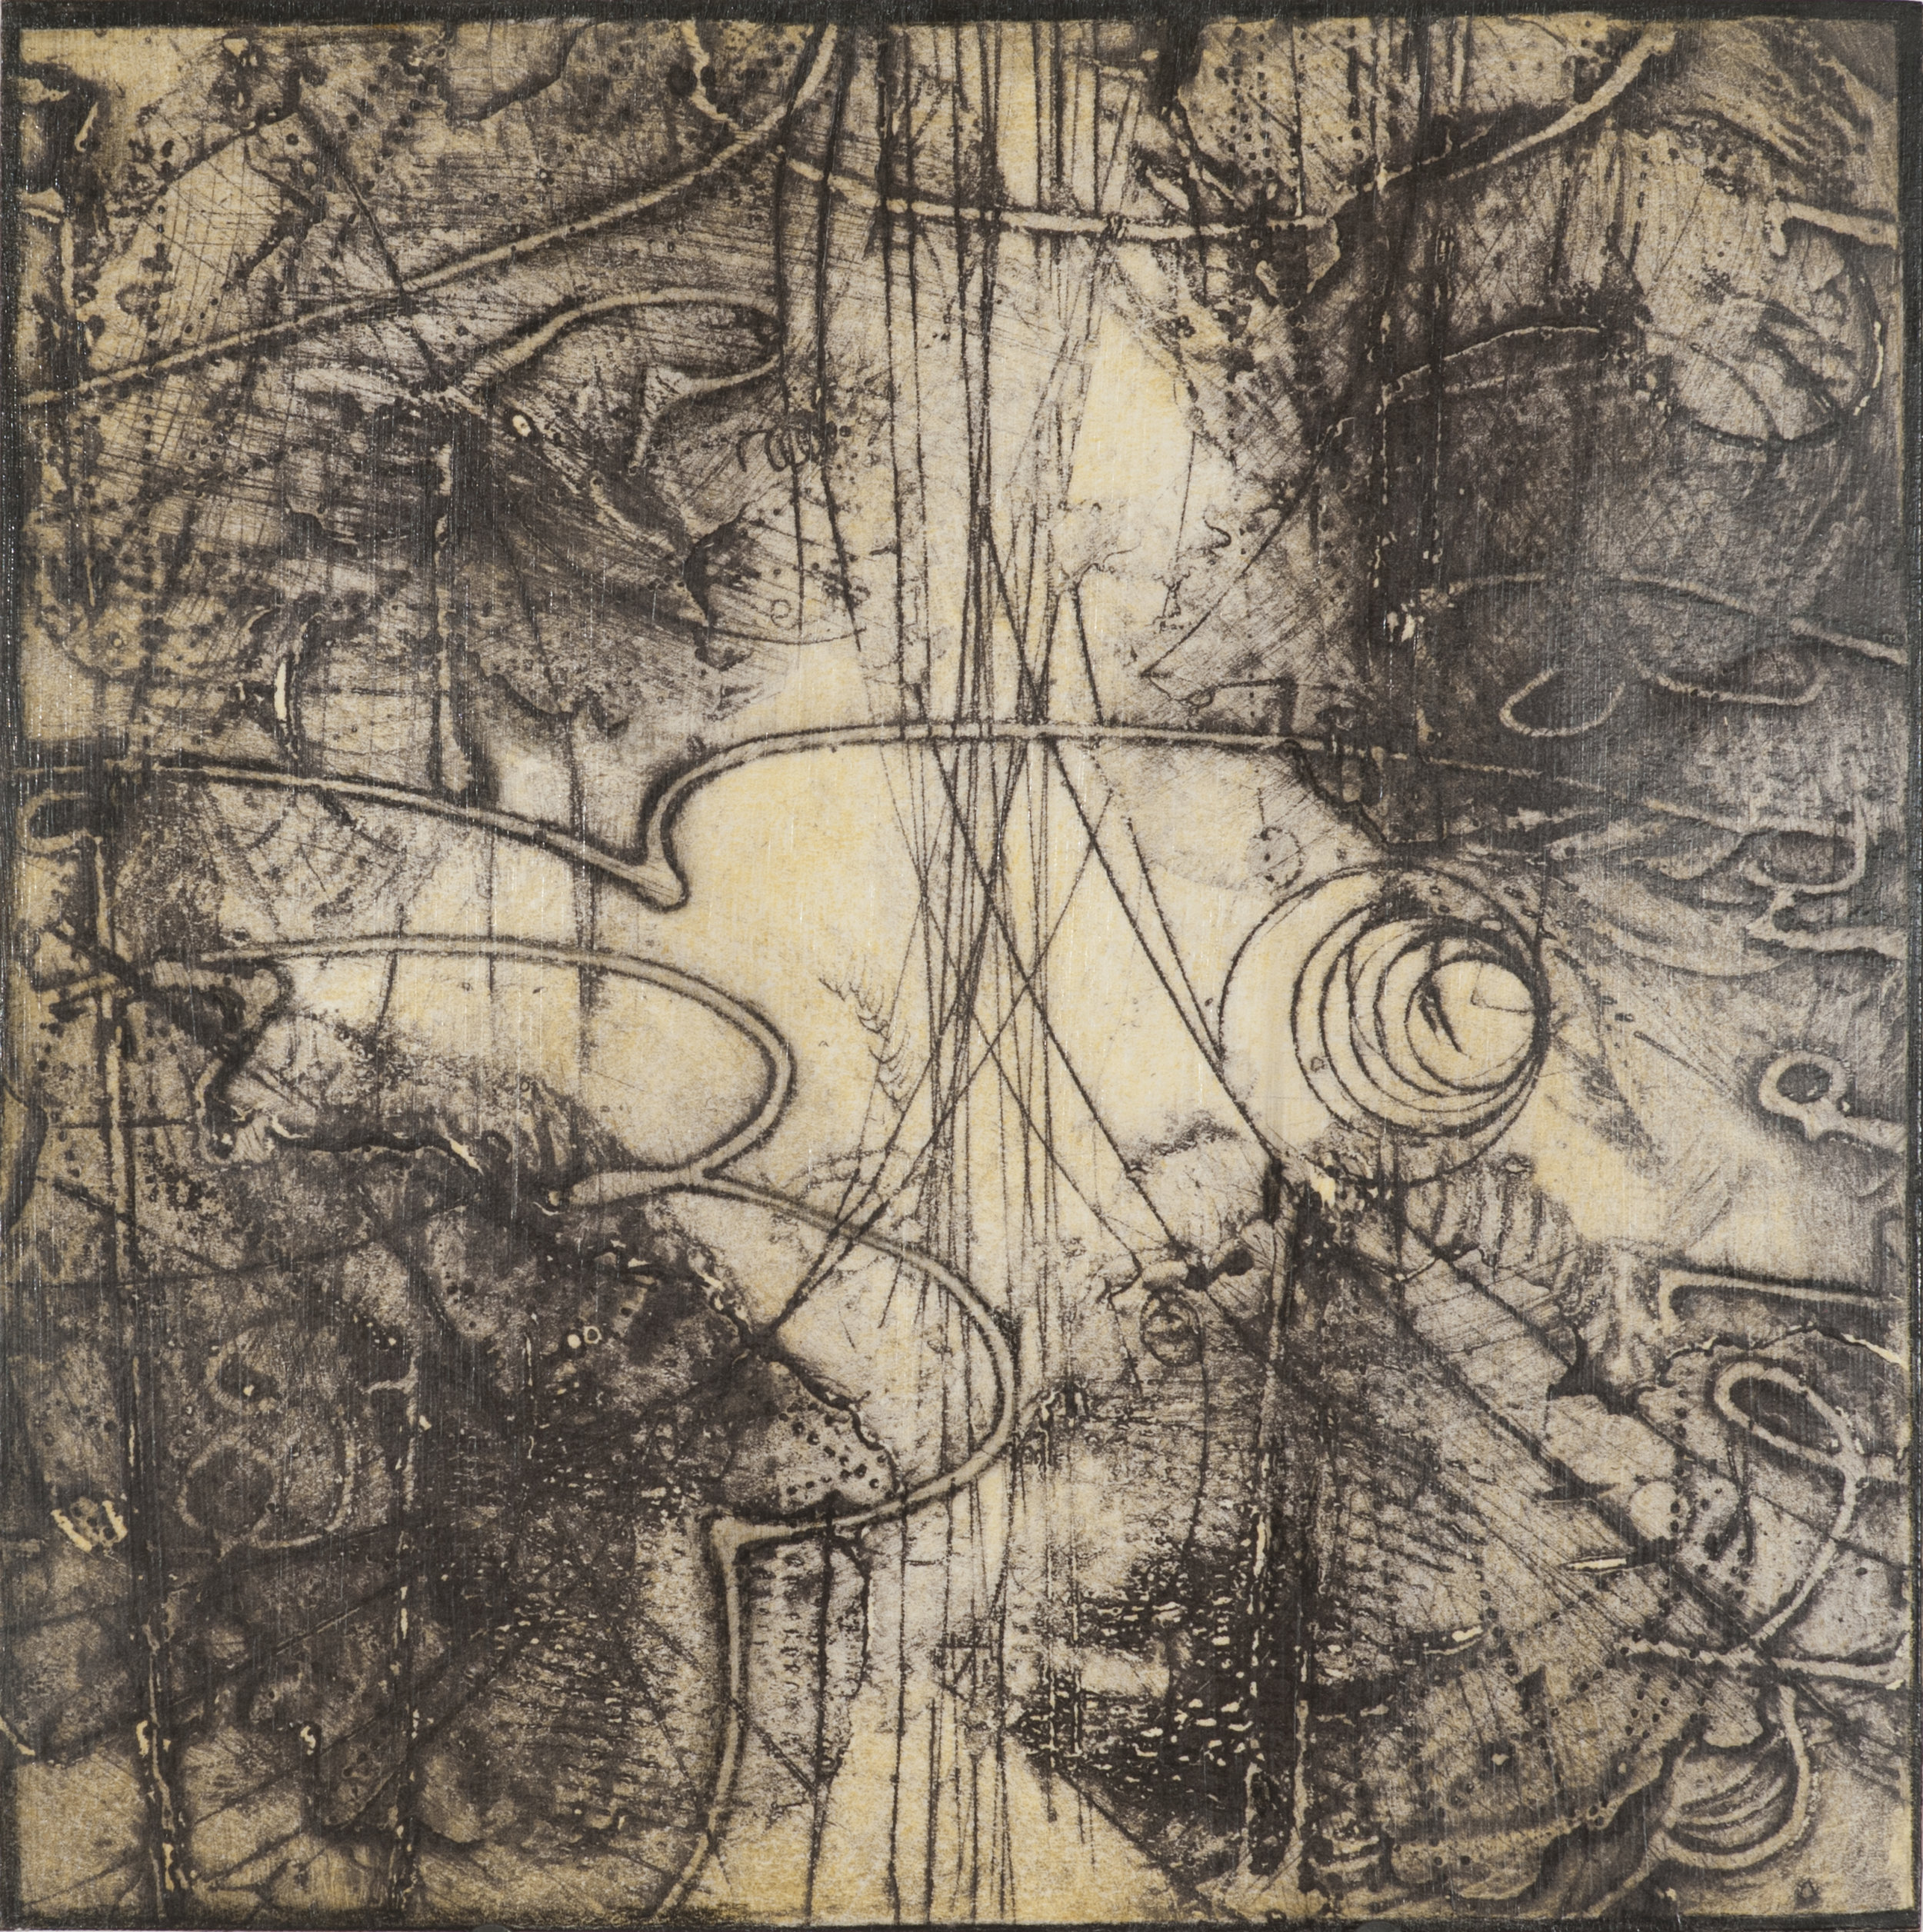 Sigma Self-Energy 6 , encaustic collagraph monoprint, Cretacolor and medium mounted on panel 10 x 10 inches, Available at   Gremillion & Co. Fine Art  , Houston